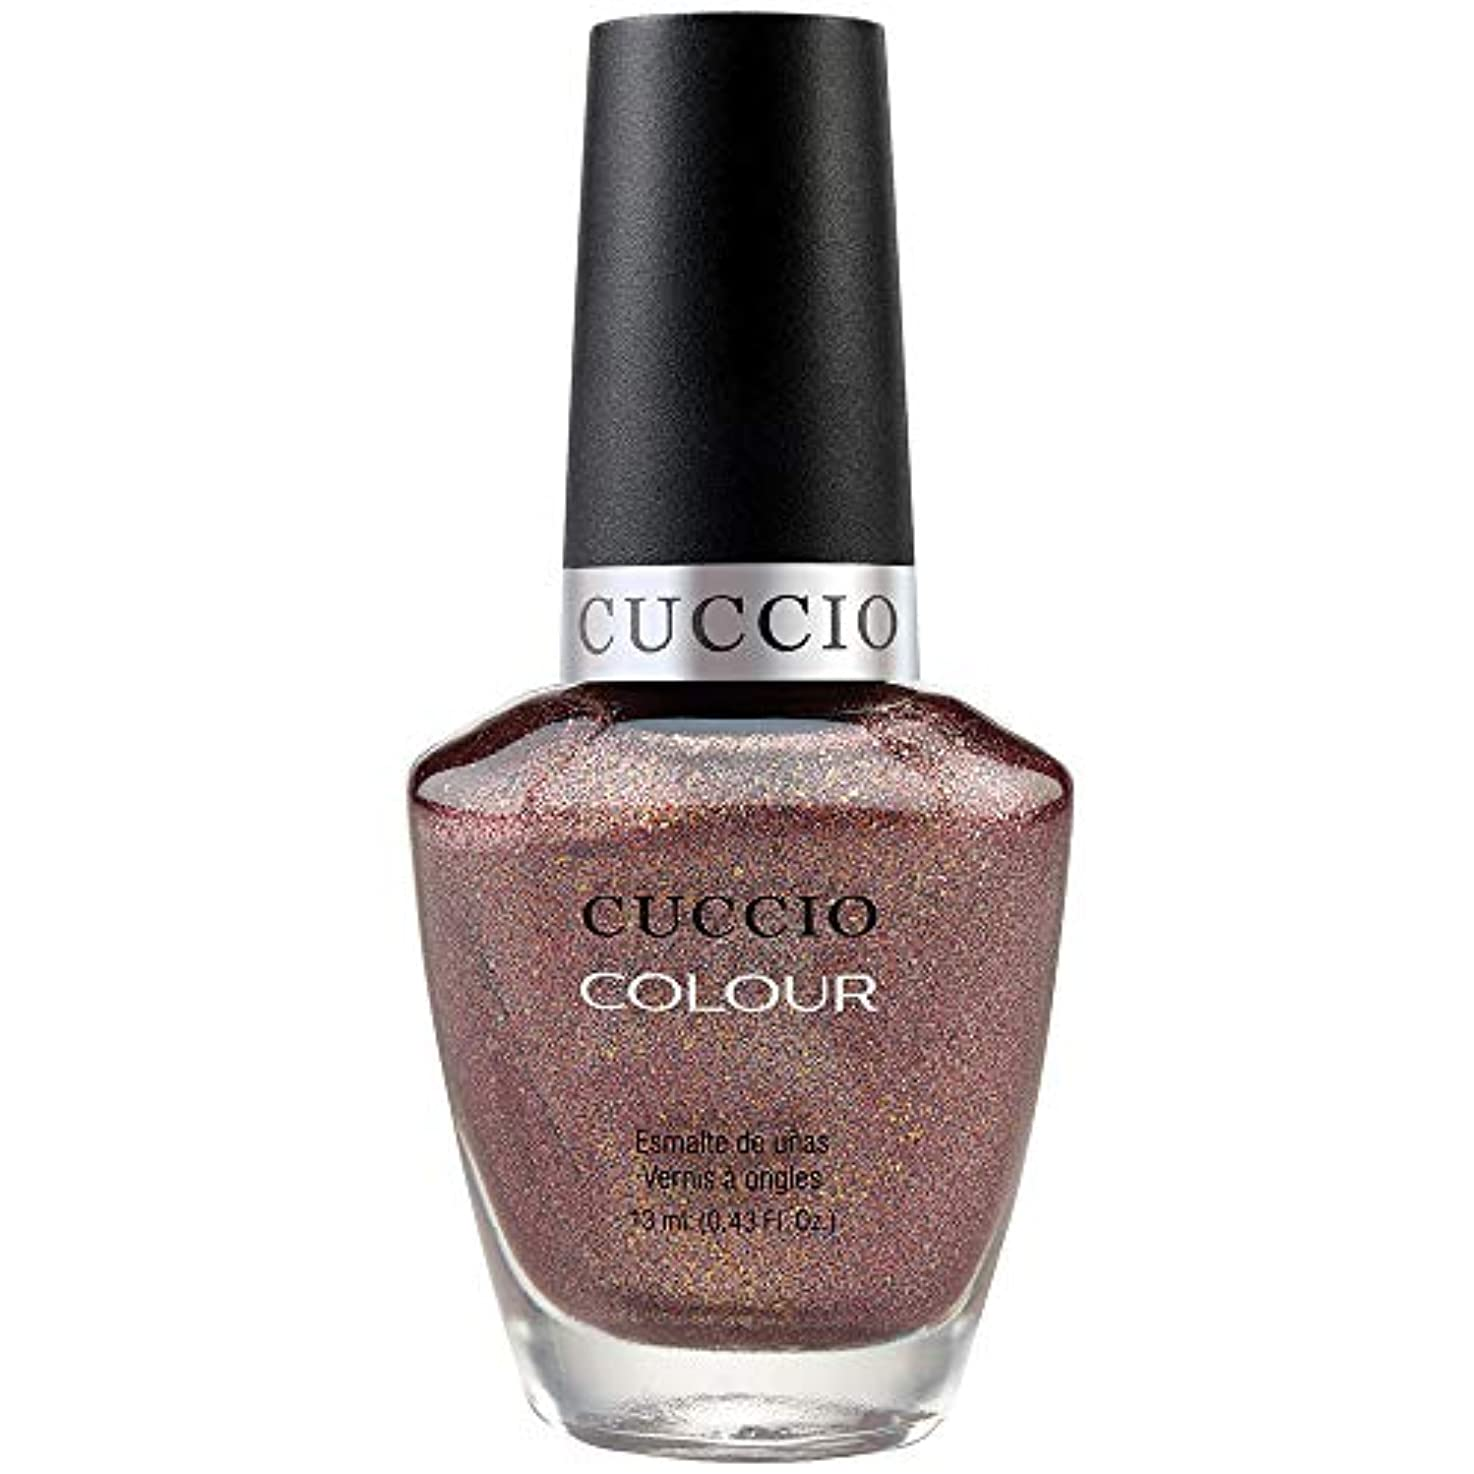 Cuccio Colour Gloss Lacquer - Coffee, Tea or Me - 0.43oz / 13ml